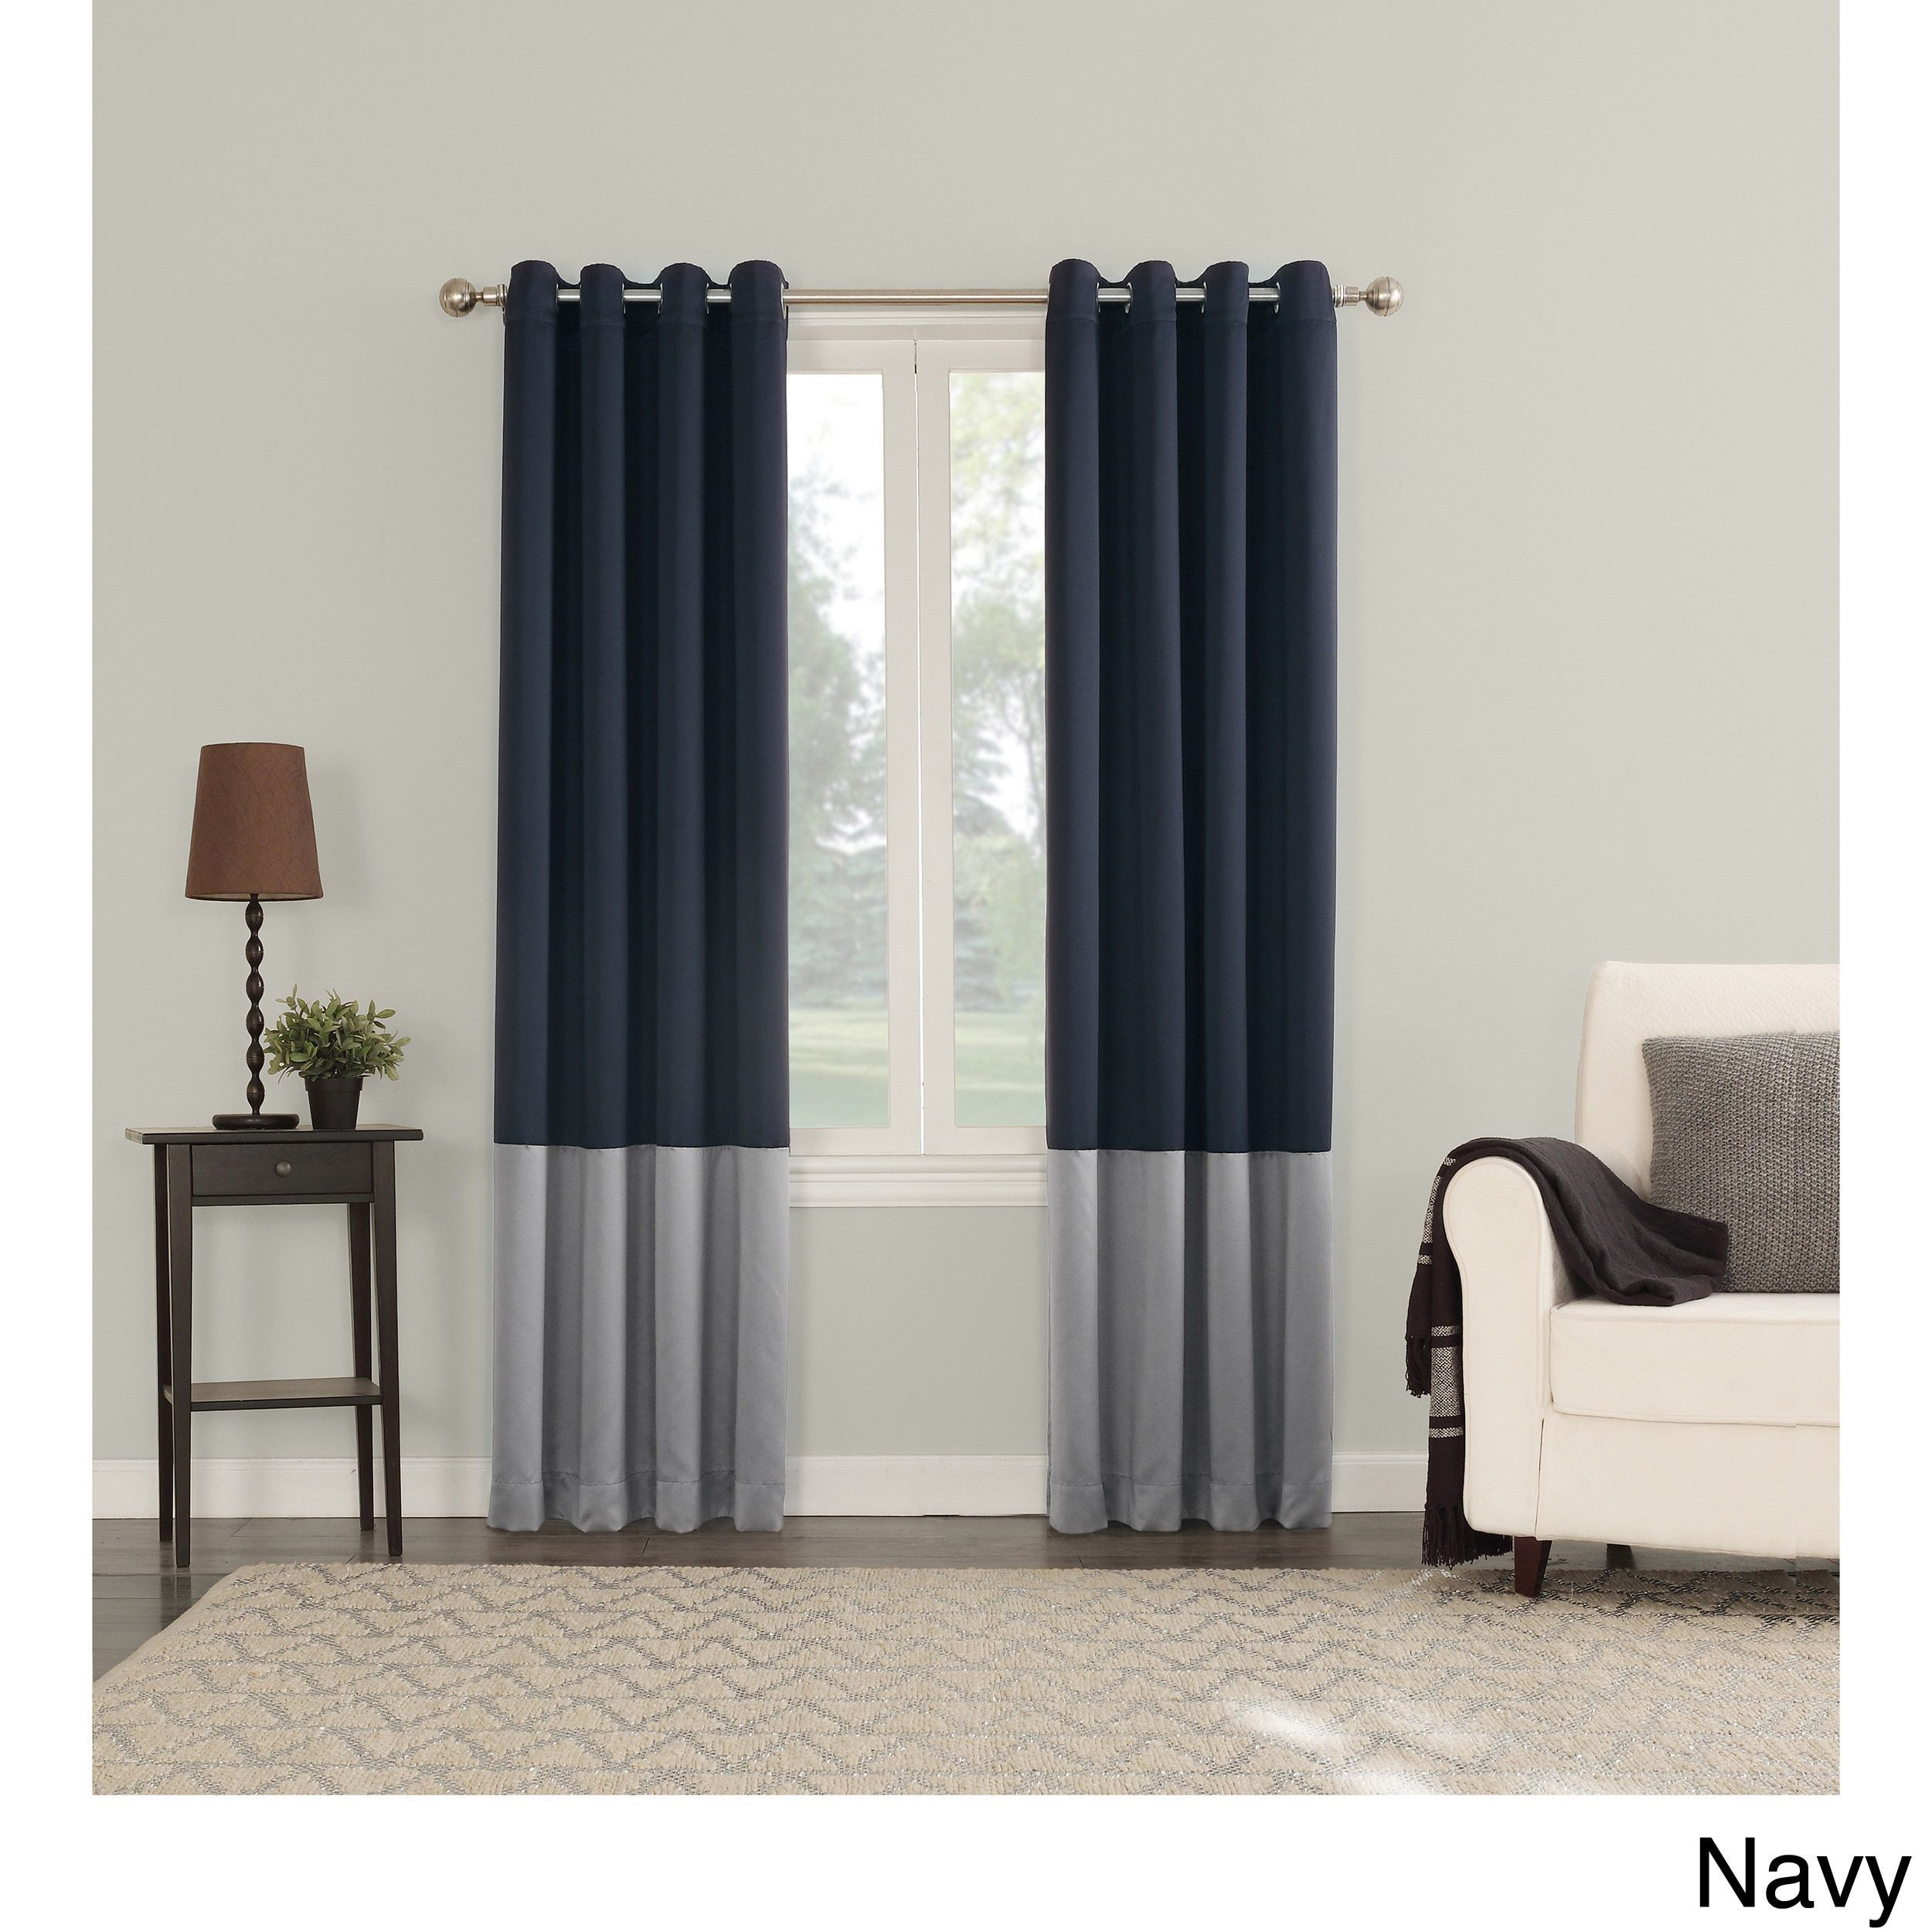 Window coverings to block sun  sun zero plymouth room darkening lined grommeted curtain panel navy